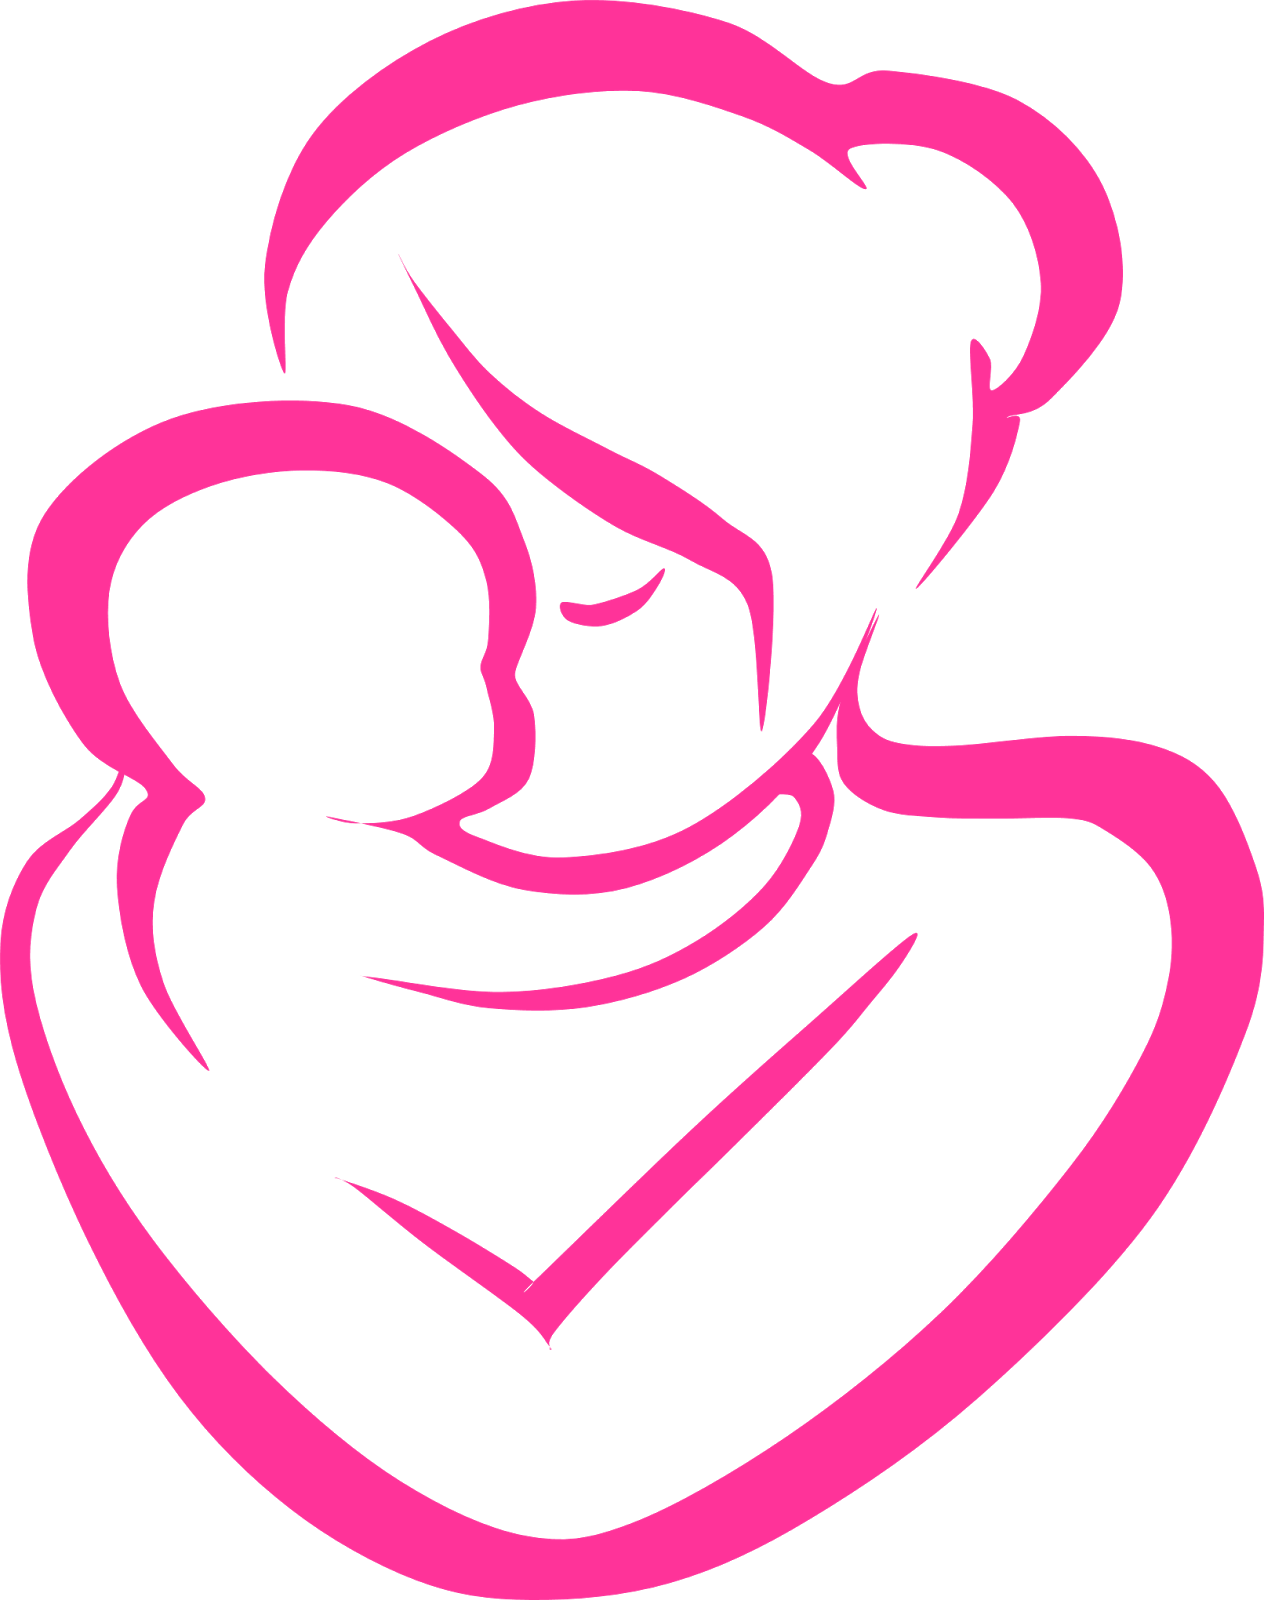 Mother And Baby Clipart Grandma Holding Baby 11 1264 X 1600 Mother Clipart Mother And Child Working Mother